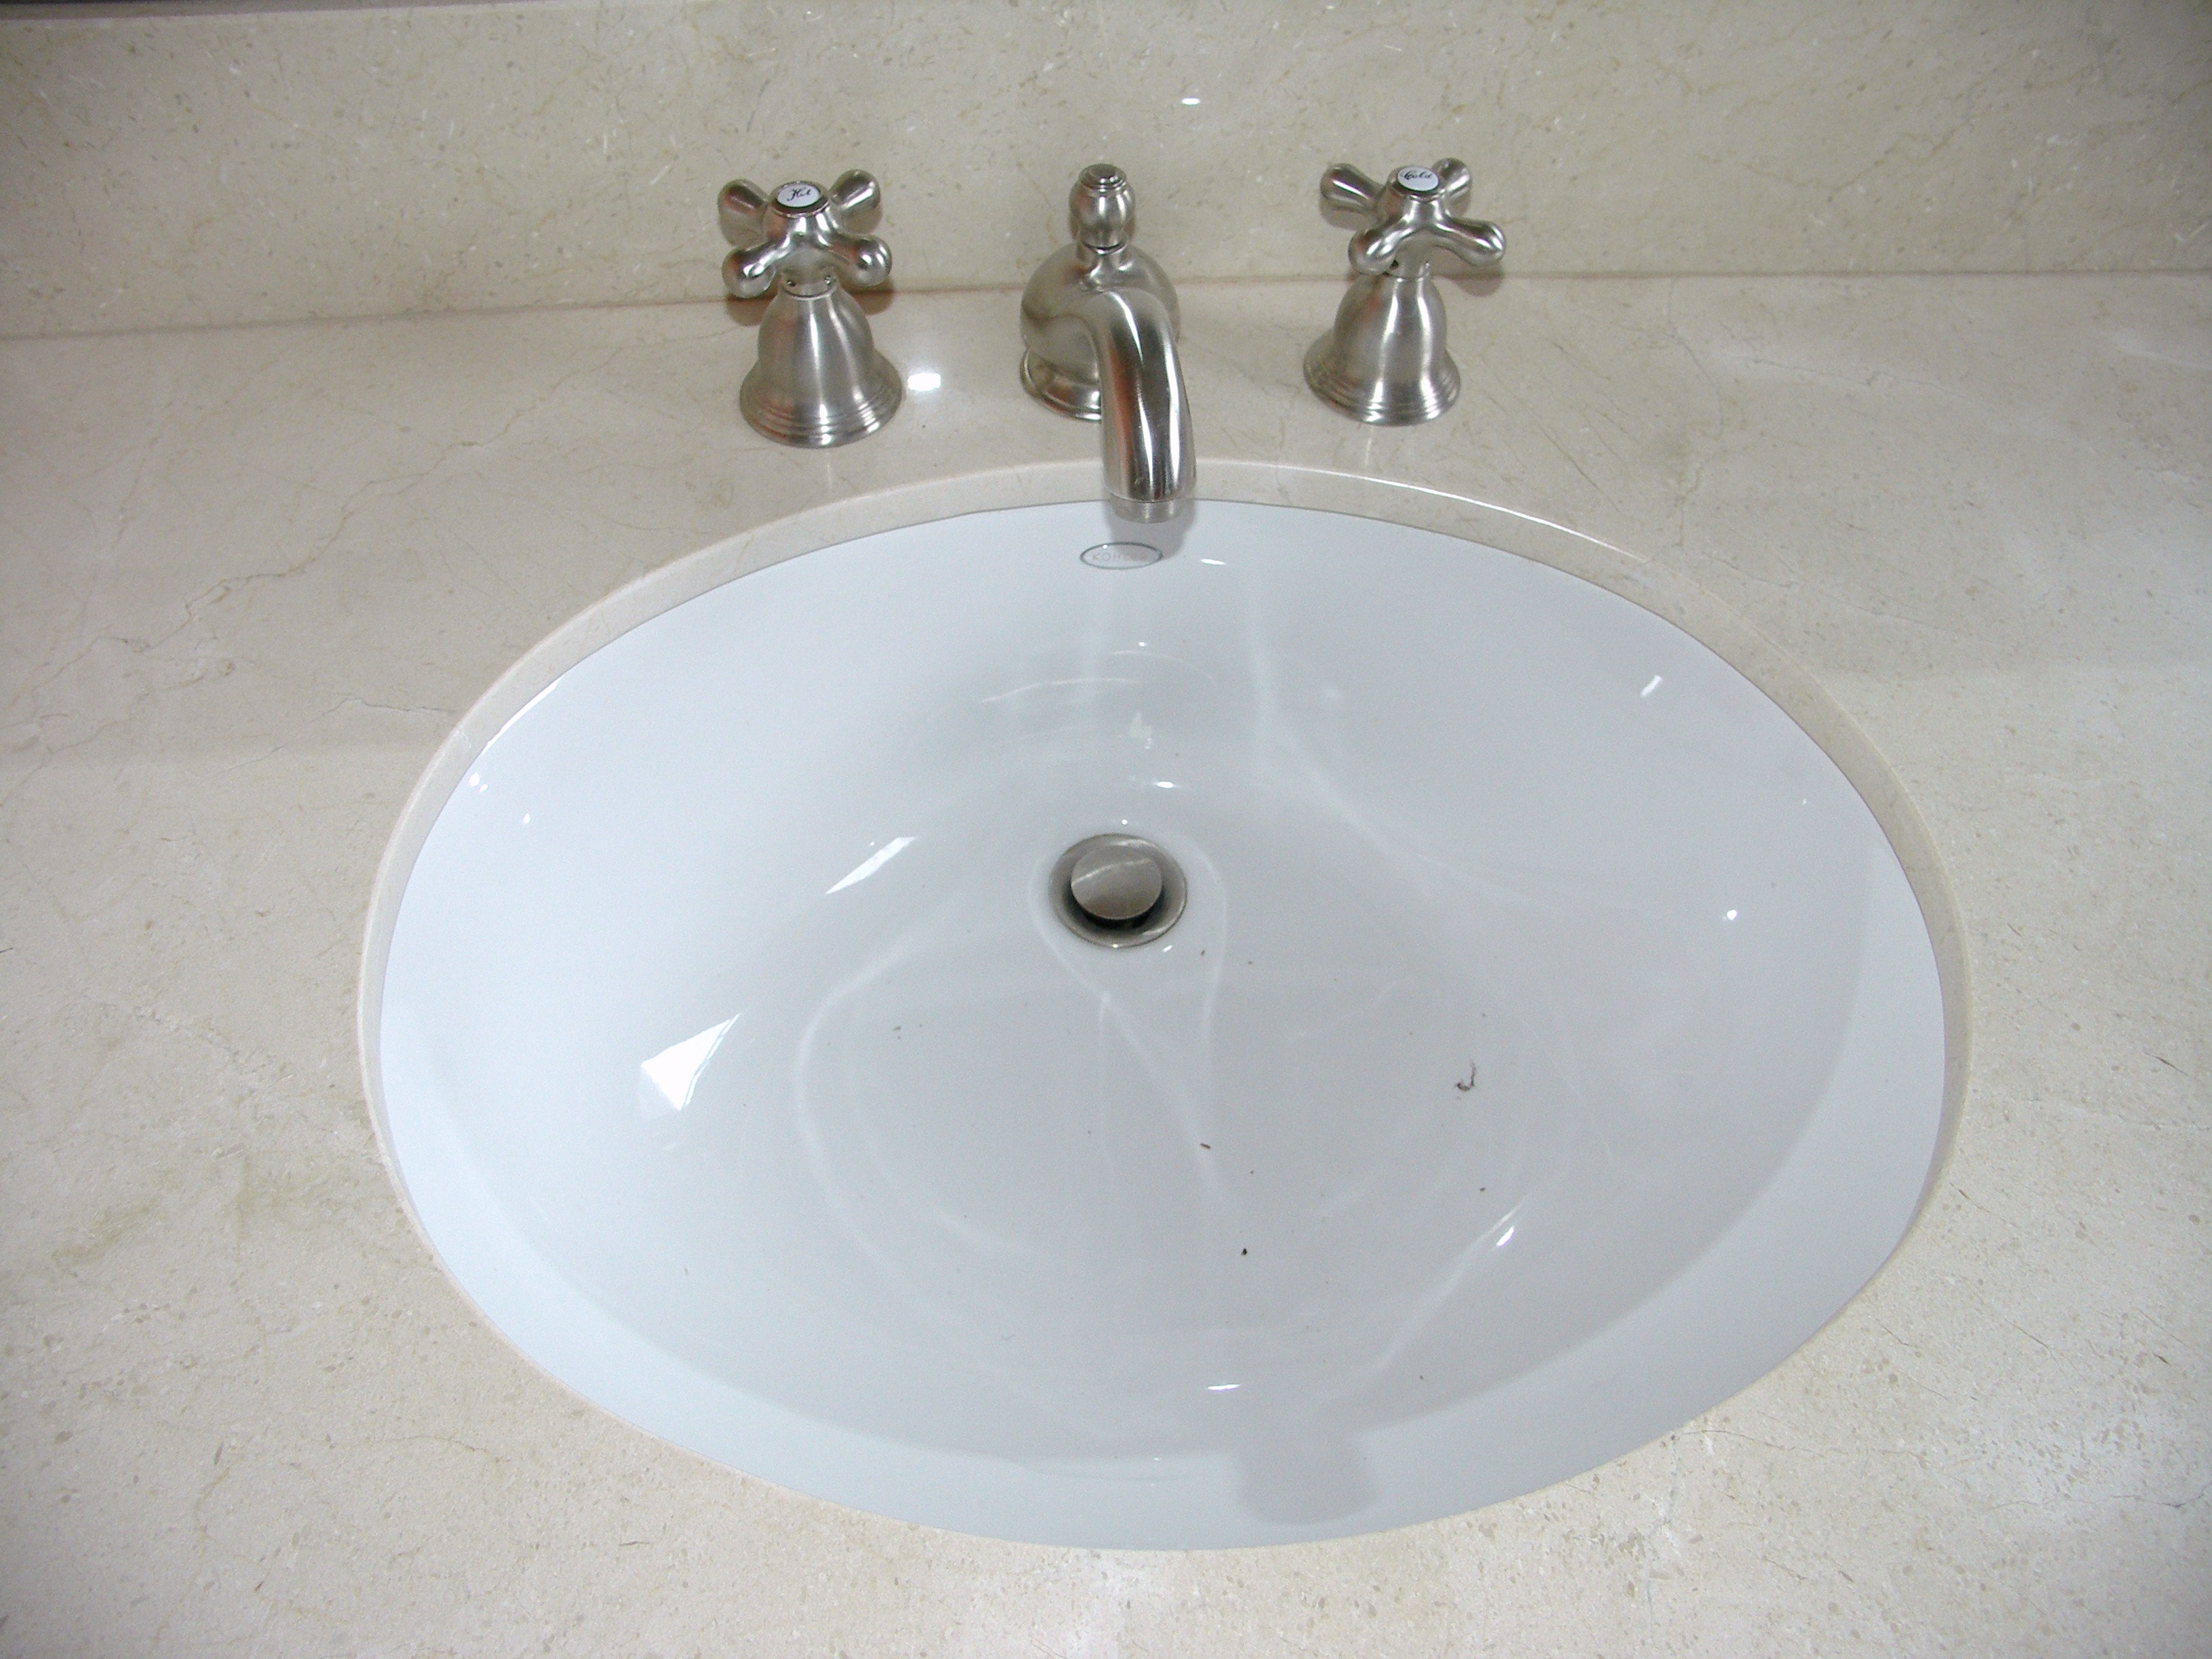 Sink Undermount : Undermount Sink with Widespread Faucet